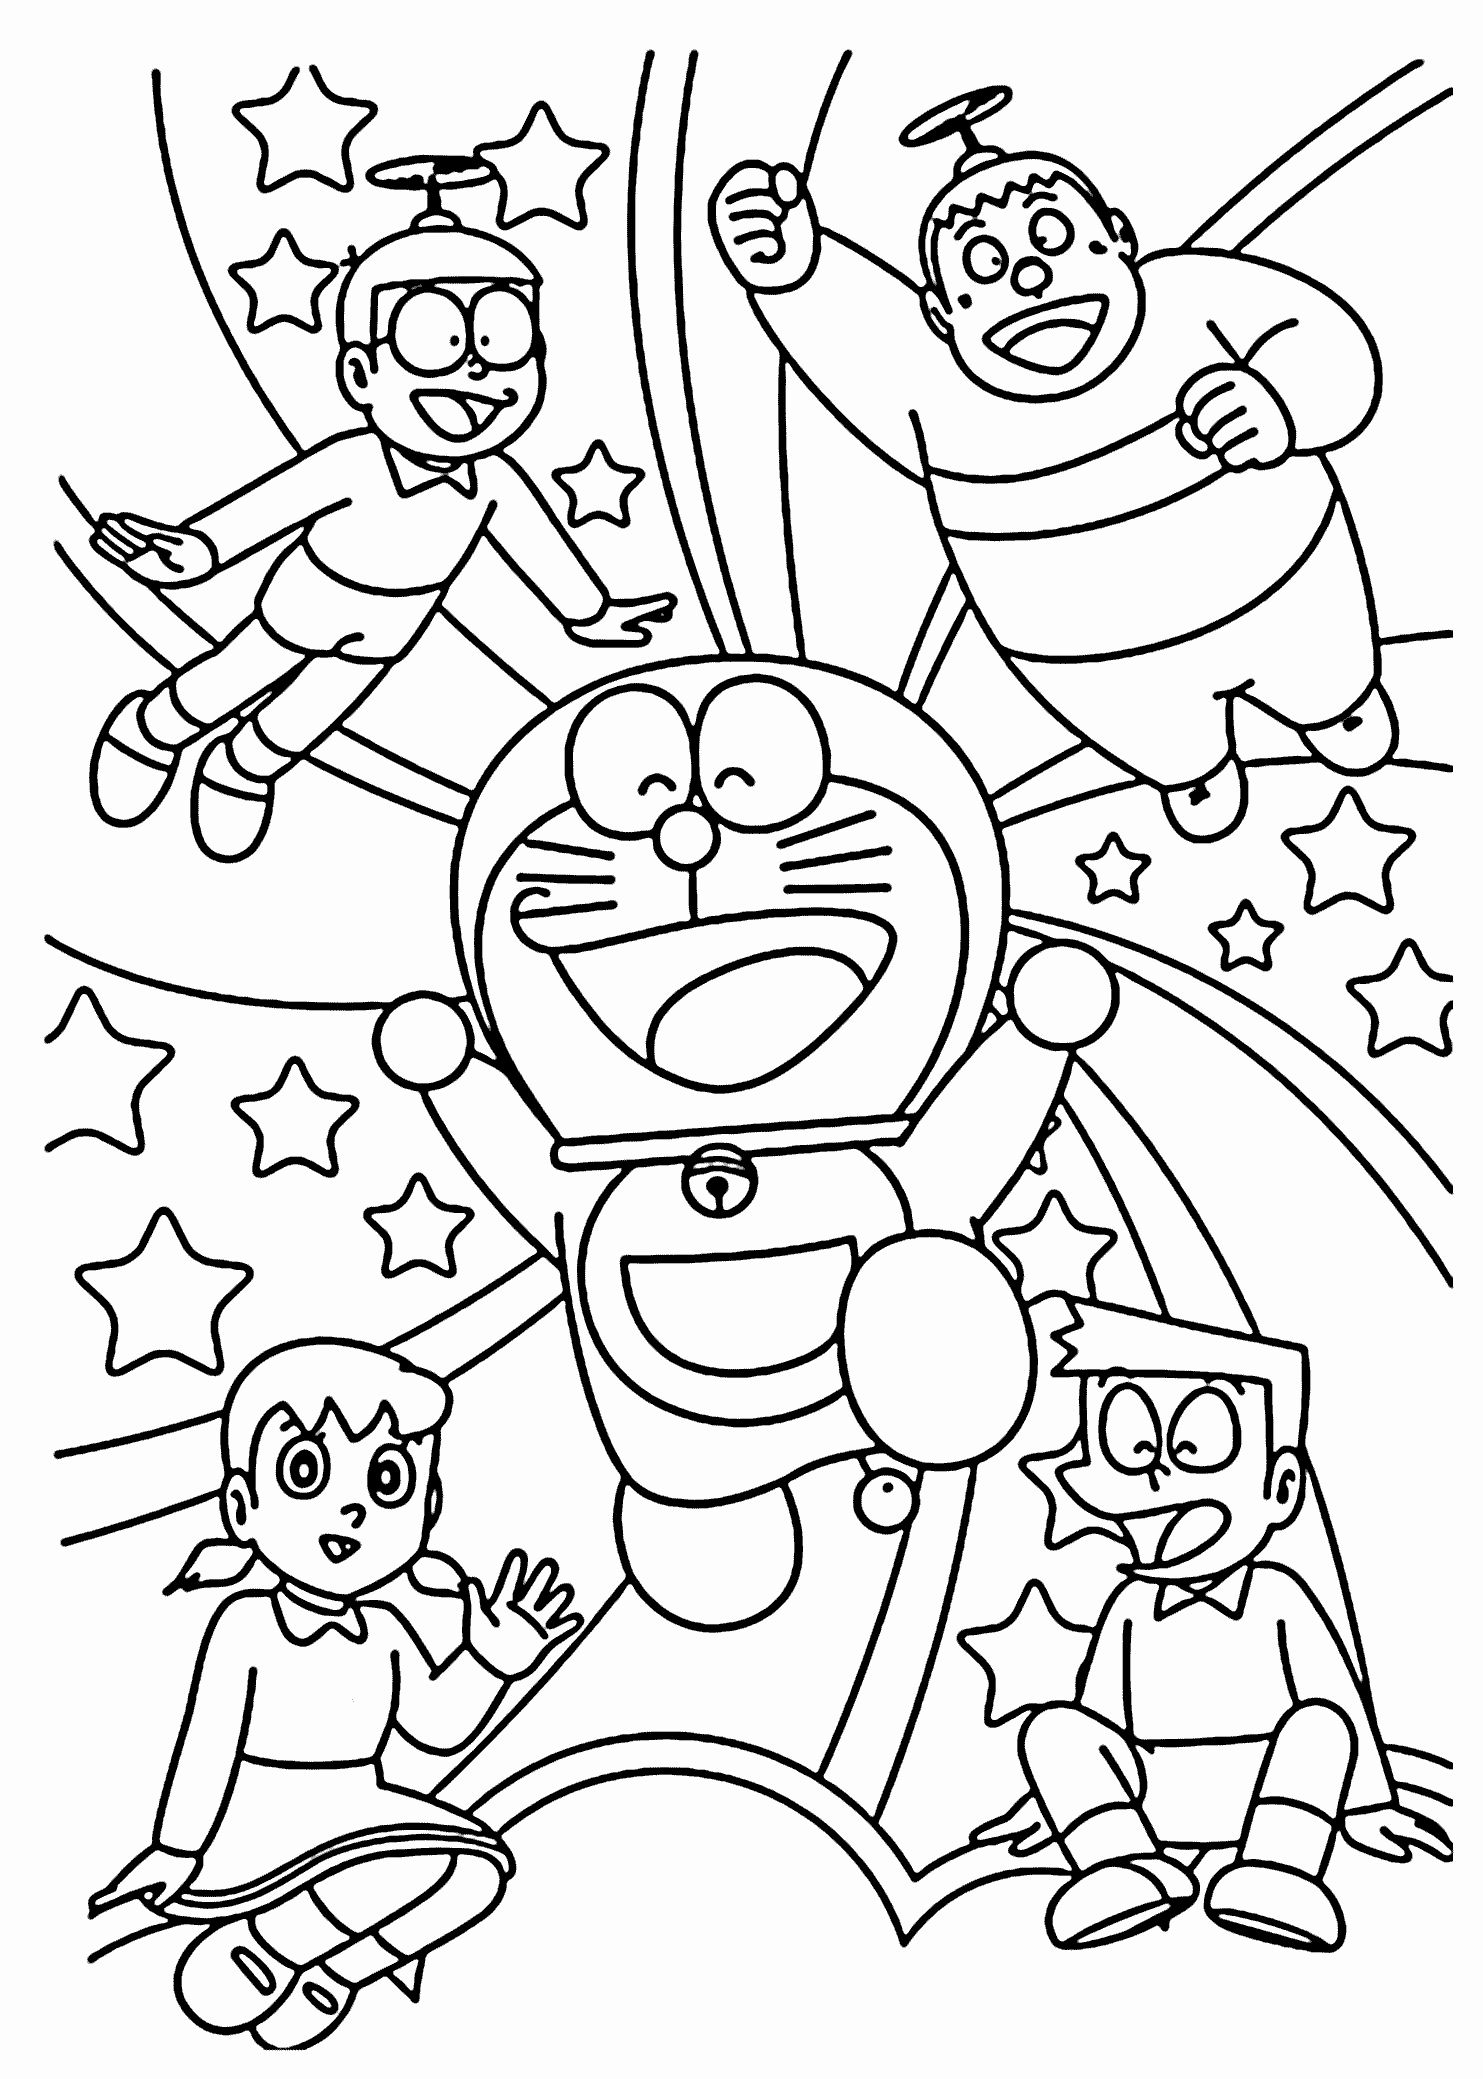 - Cartoon Coloring Book Pdf In 2020 Cartoon Coloring Pages